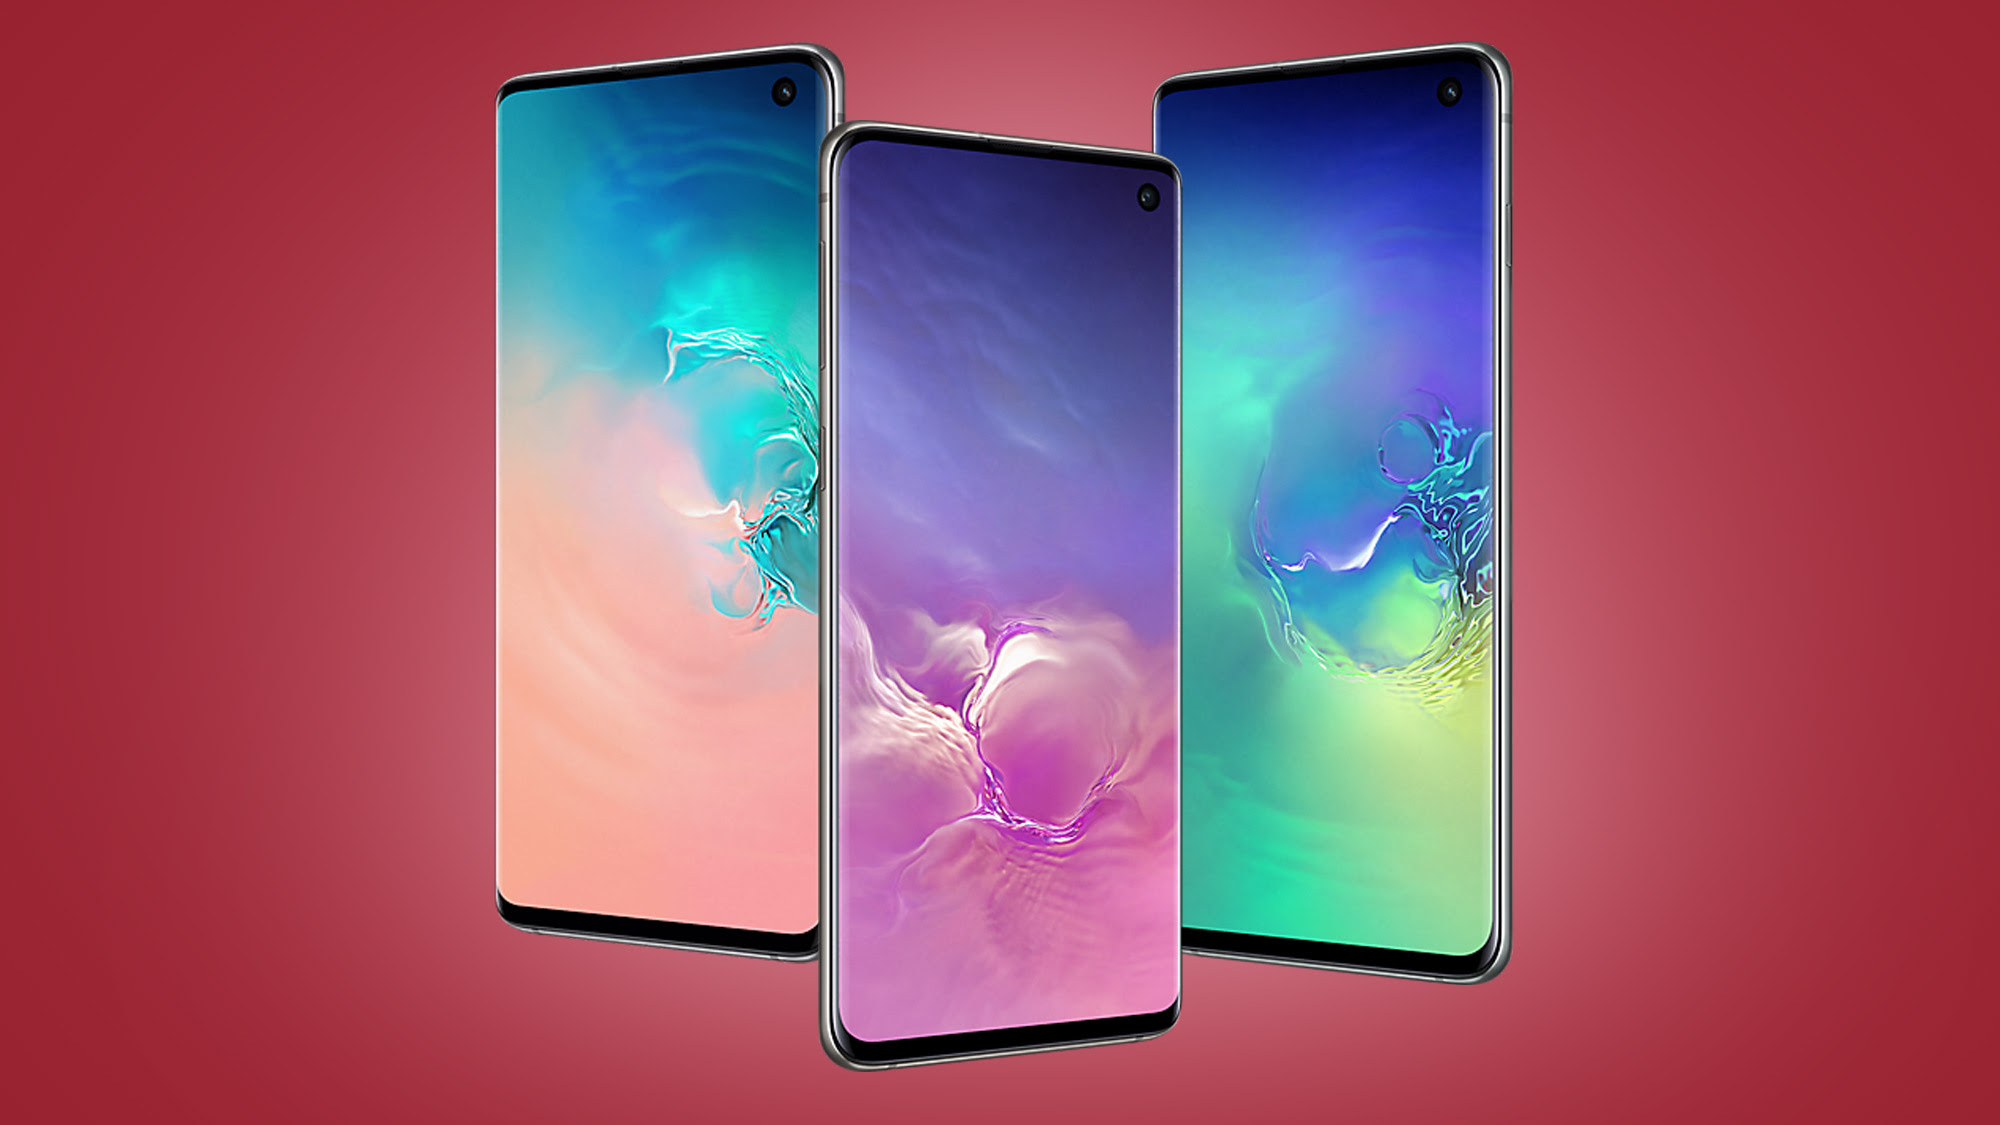 This sub-£30/pm Samsung Galaxy S10 deal is the best we've seen for Black Friday...so far